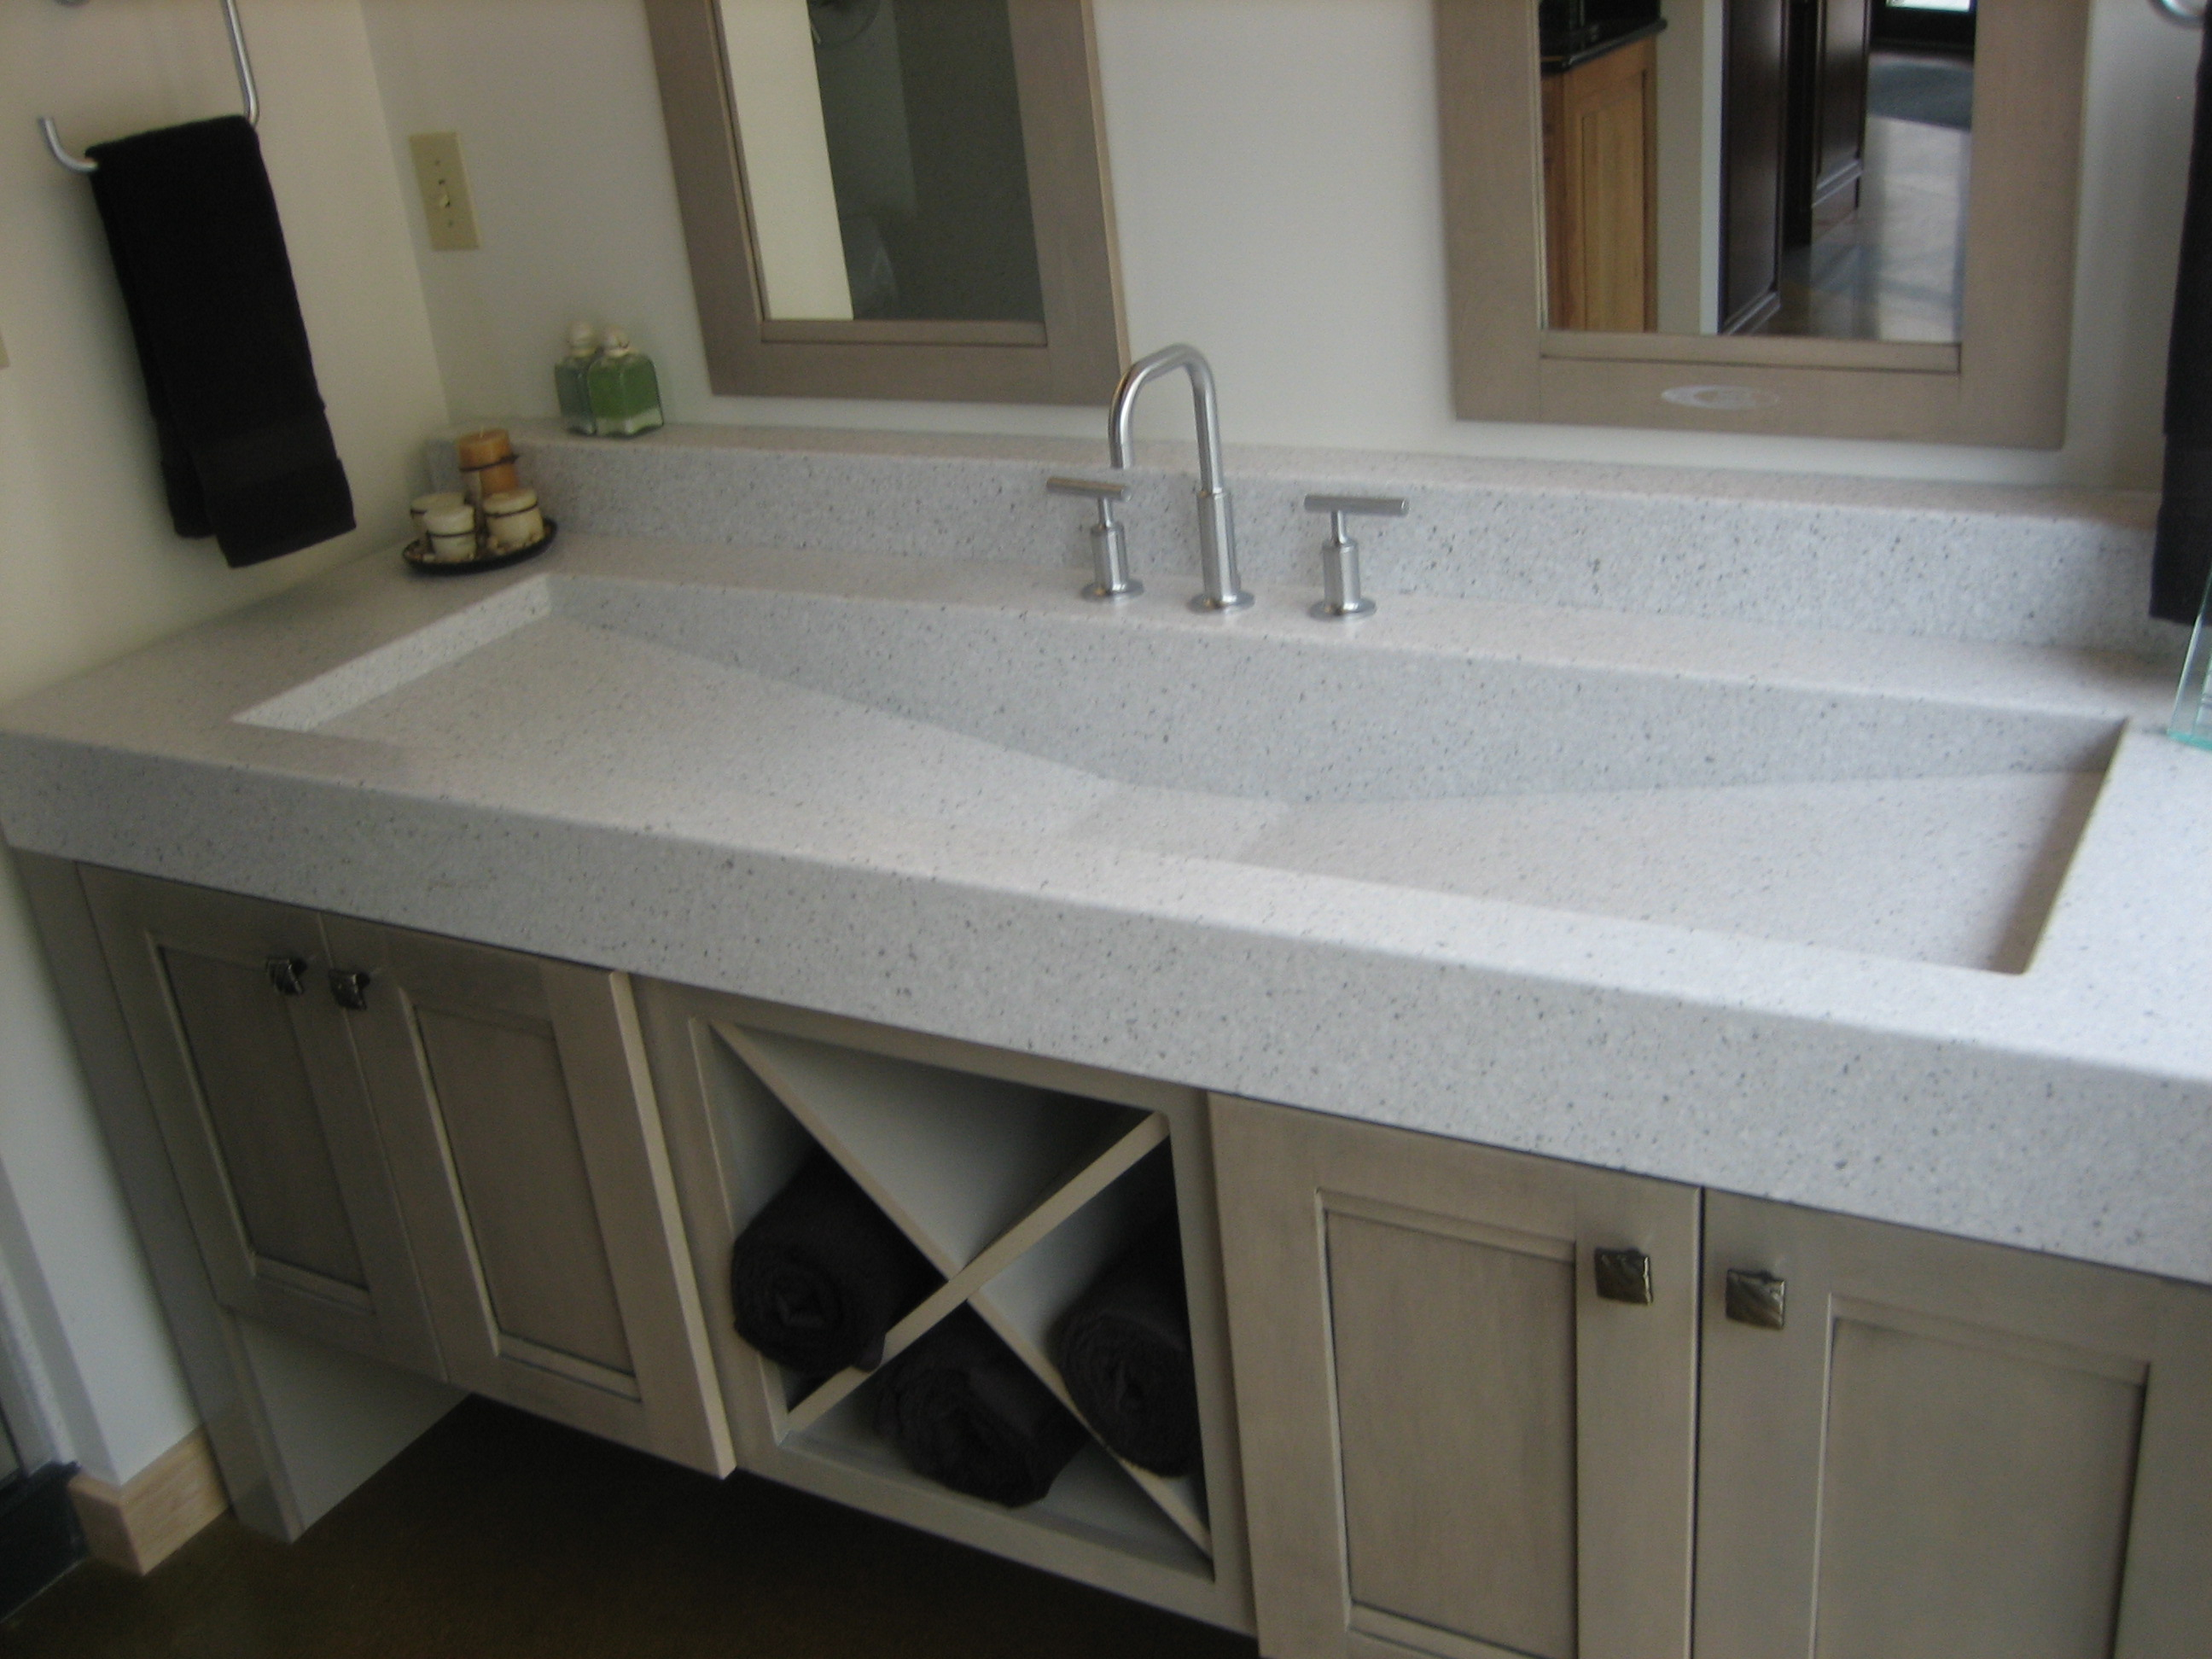 Bathroom Sinks Usa bathroom sinks with vanity units. small bathroom sink vanity units